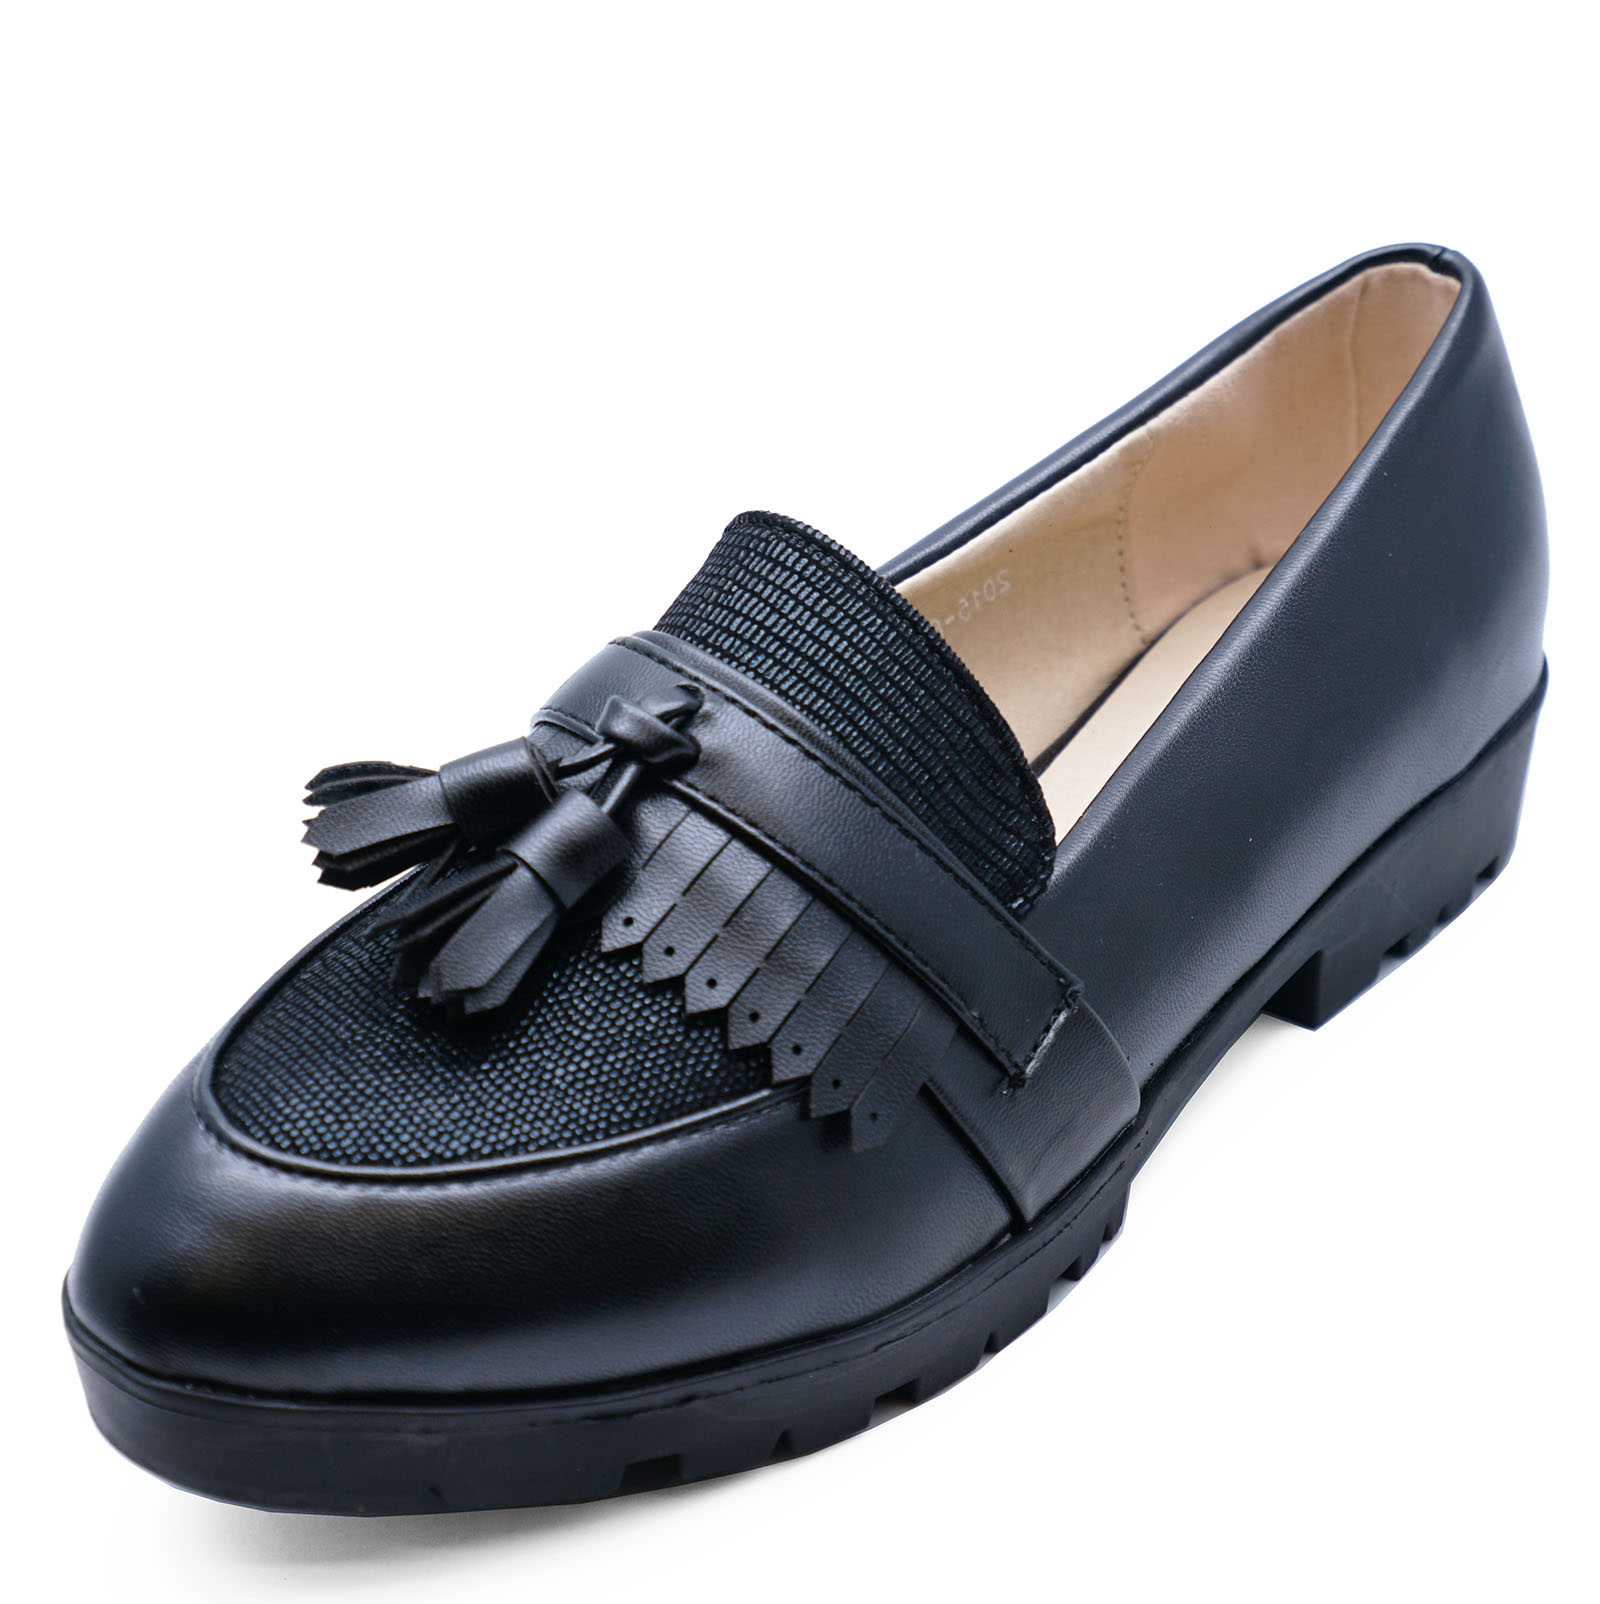 CLEATED FLAT SMART COMFY WORK SHOES UK